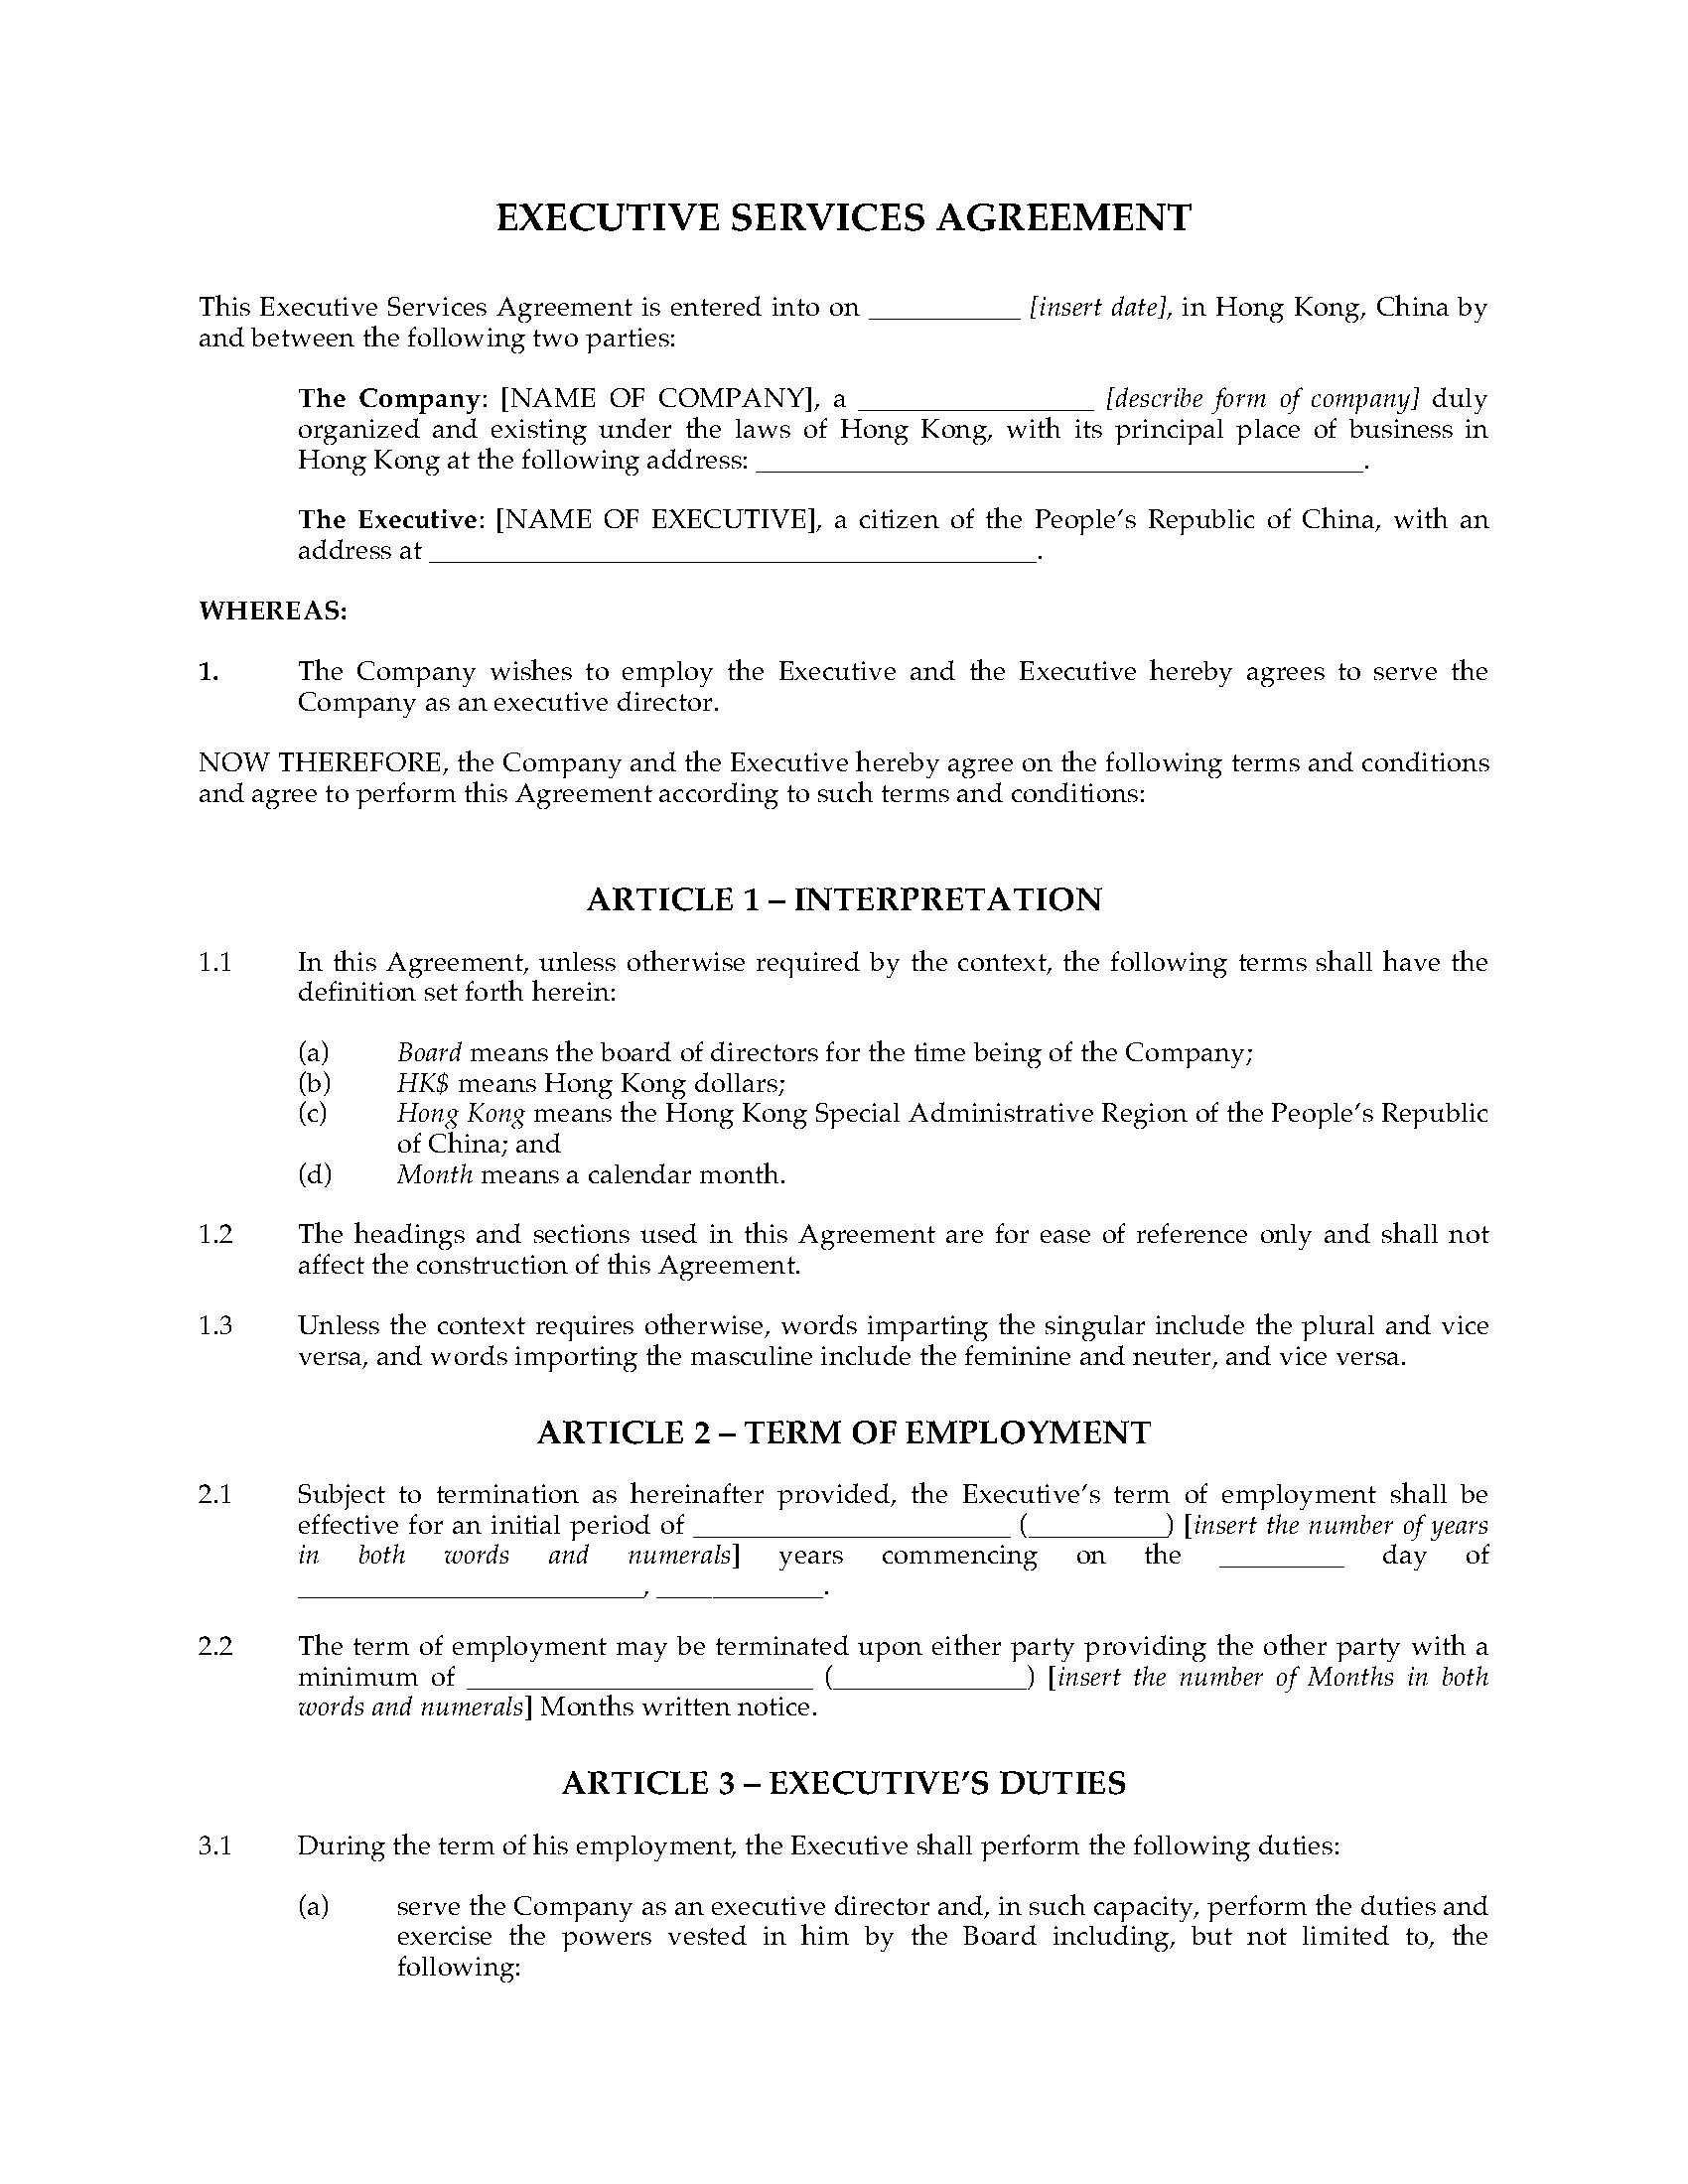 Hong Kong Executive Services Agreement Legal Forms And